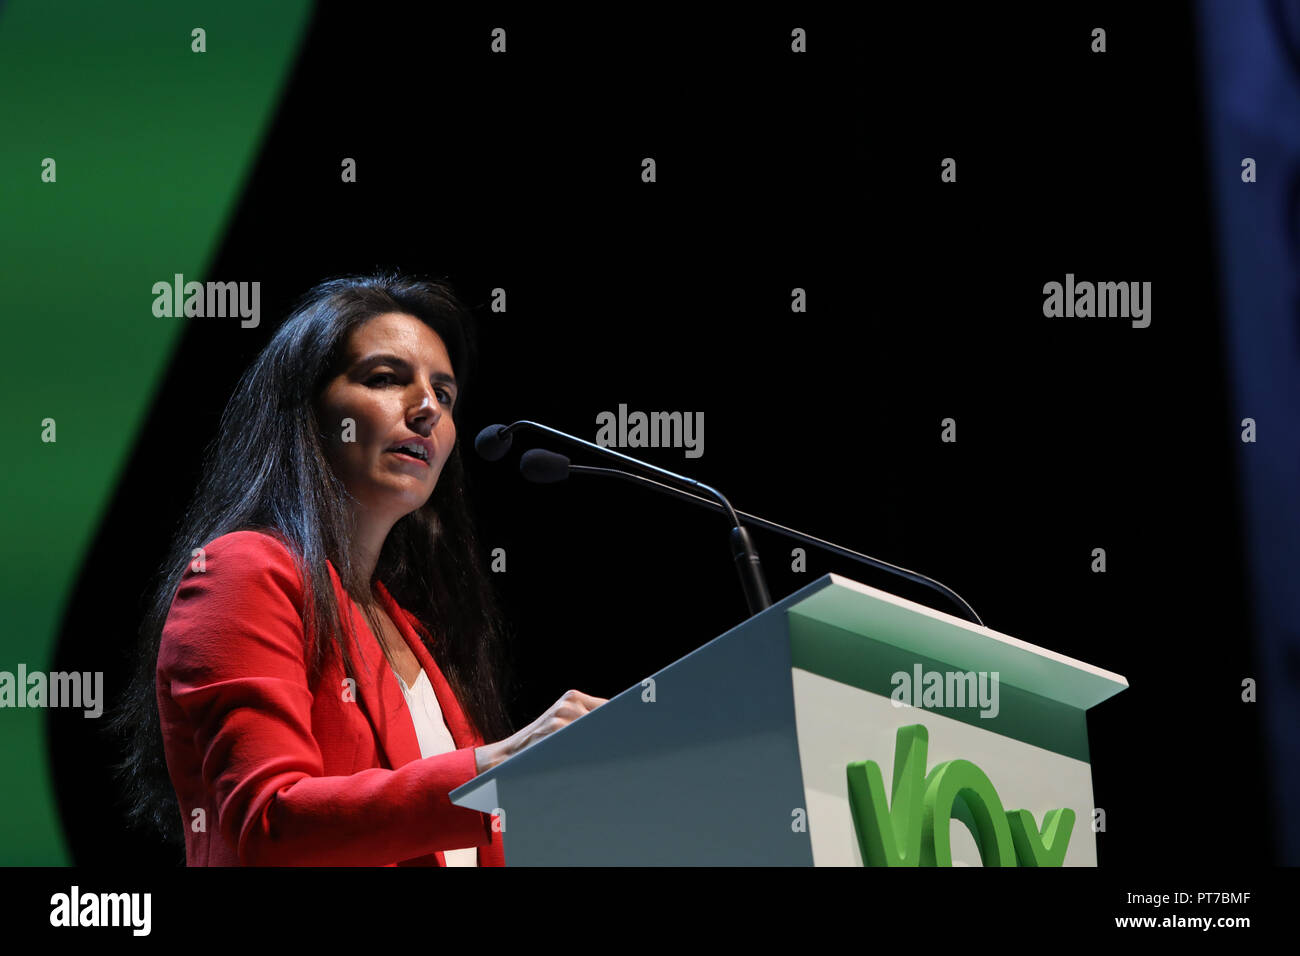 Madrid, Spain. 7th Oct 2018. ROCIO MONASTERIO, the president of VOX Madrid, participating in the event. The far-right political party Vox has crowded this Sunday the 'Palacio de Vistalegre' in a massive event that has attended, according to the organisers, 10,000 people, and in which they have presented their 100 urgent measures for Spain on Oct 7, 2018 in Madrid, Spain Credit: Jesús Hellin/Alamy Live News - Stock Image